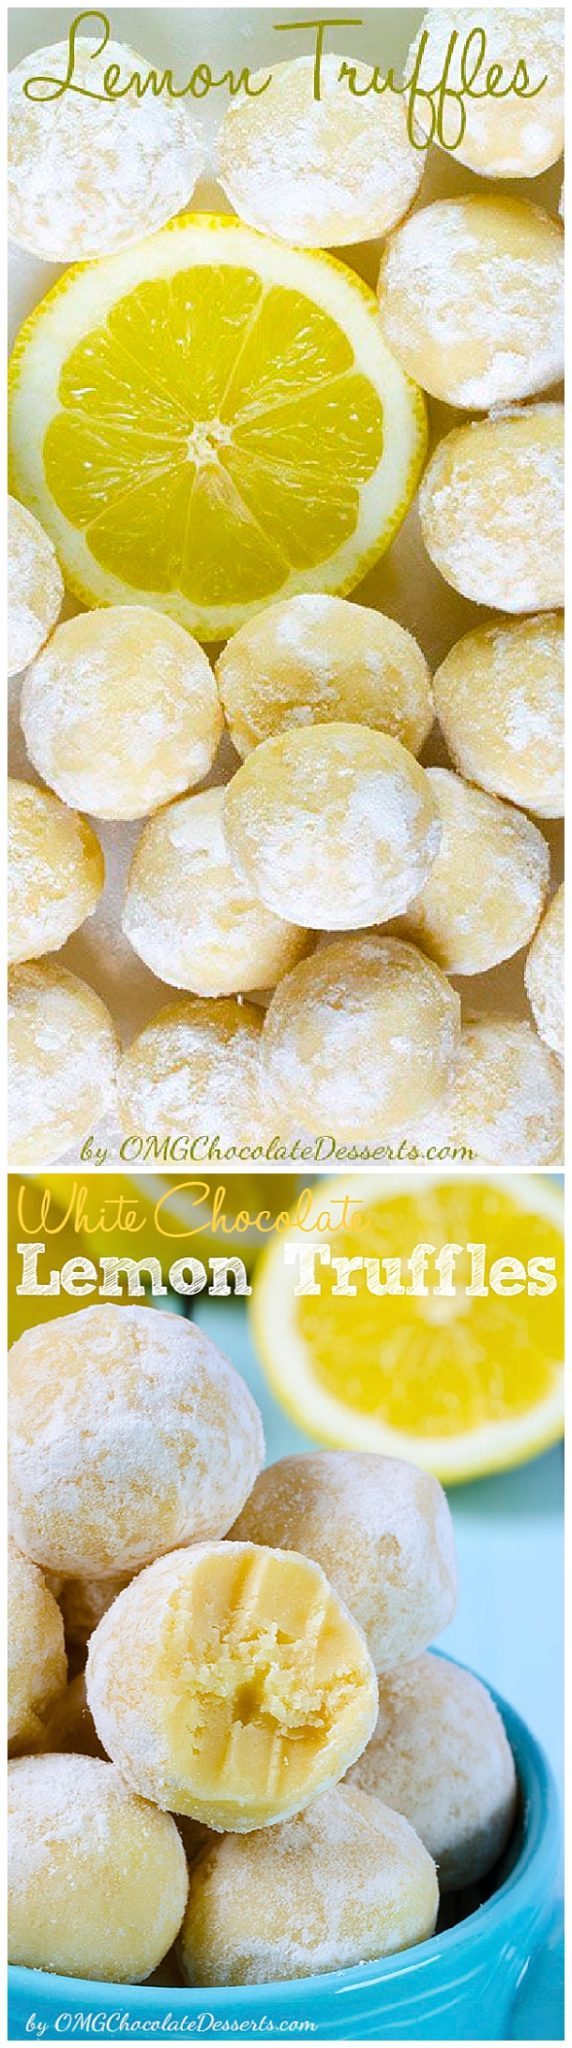 White Chocolate Lemon Truffles Recipe via OMG Chocolate Desserts - The BEST Easy Lemon Desserts and Treats Recipes - Perfect For Easter, Mother's Day Brunch, Bridal or Baby Showers and Pretty Spring and Summer Holiday Party Refreshments! #lemondesserts #lemonrecipes #easylemonrecipes #lemon #lemontreats #easterdesserts #mothersdaydesserts #springdesserts #holidaydesserts #summerdesserts